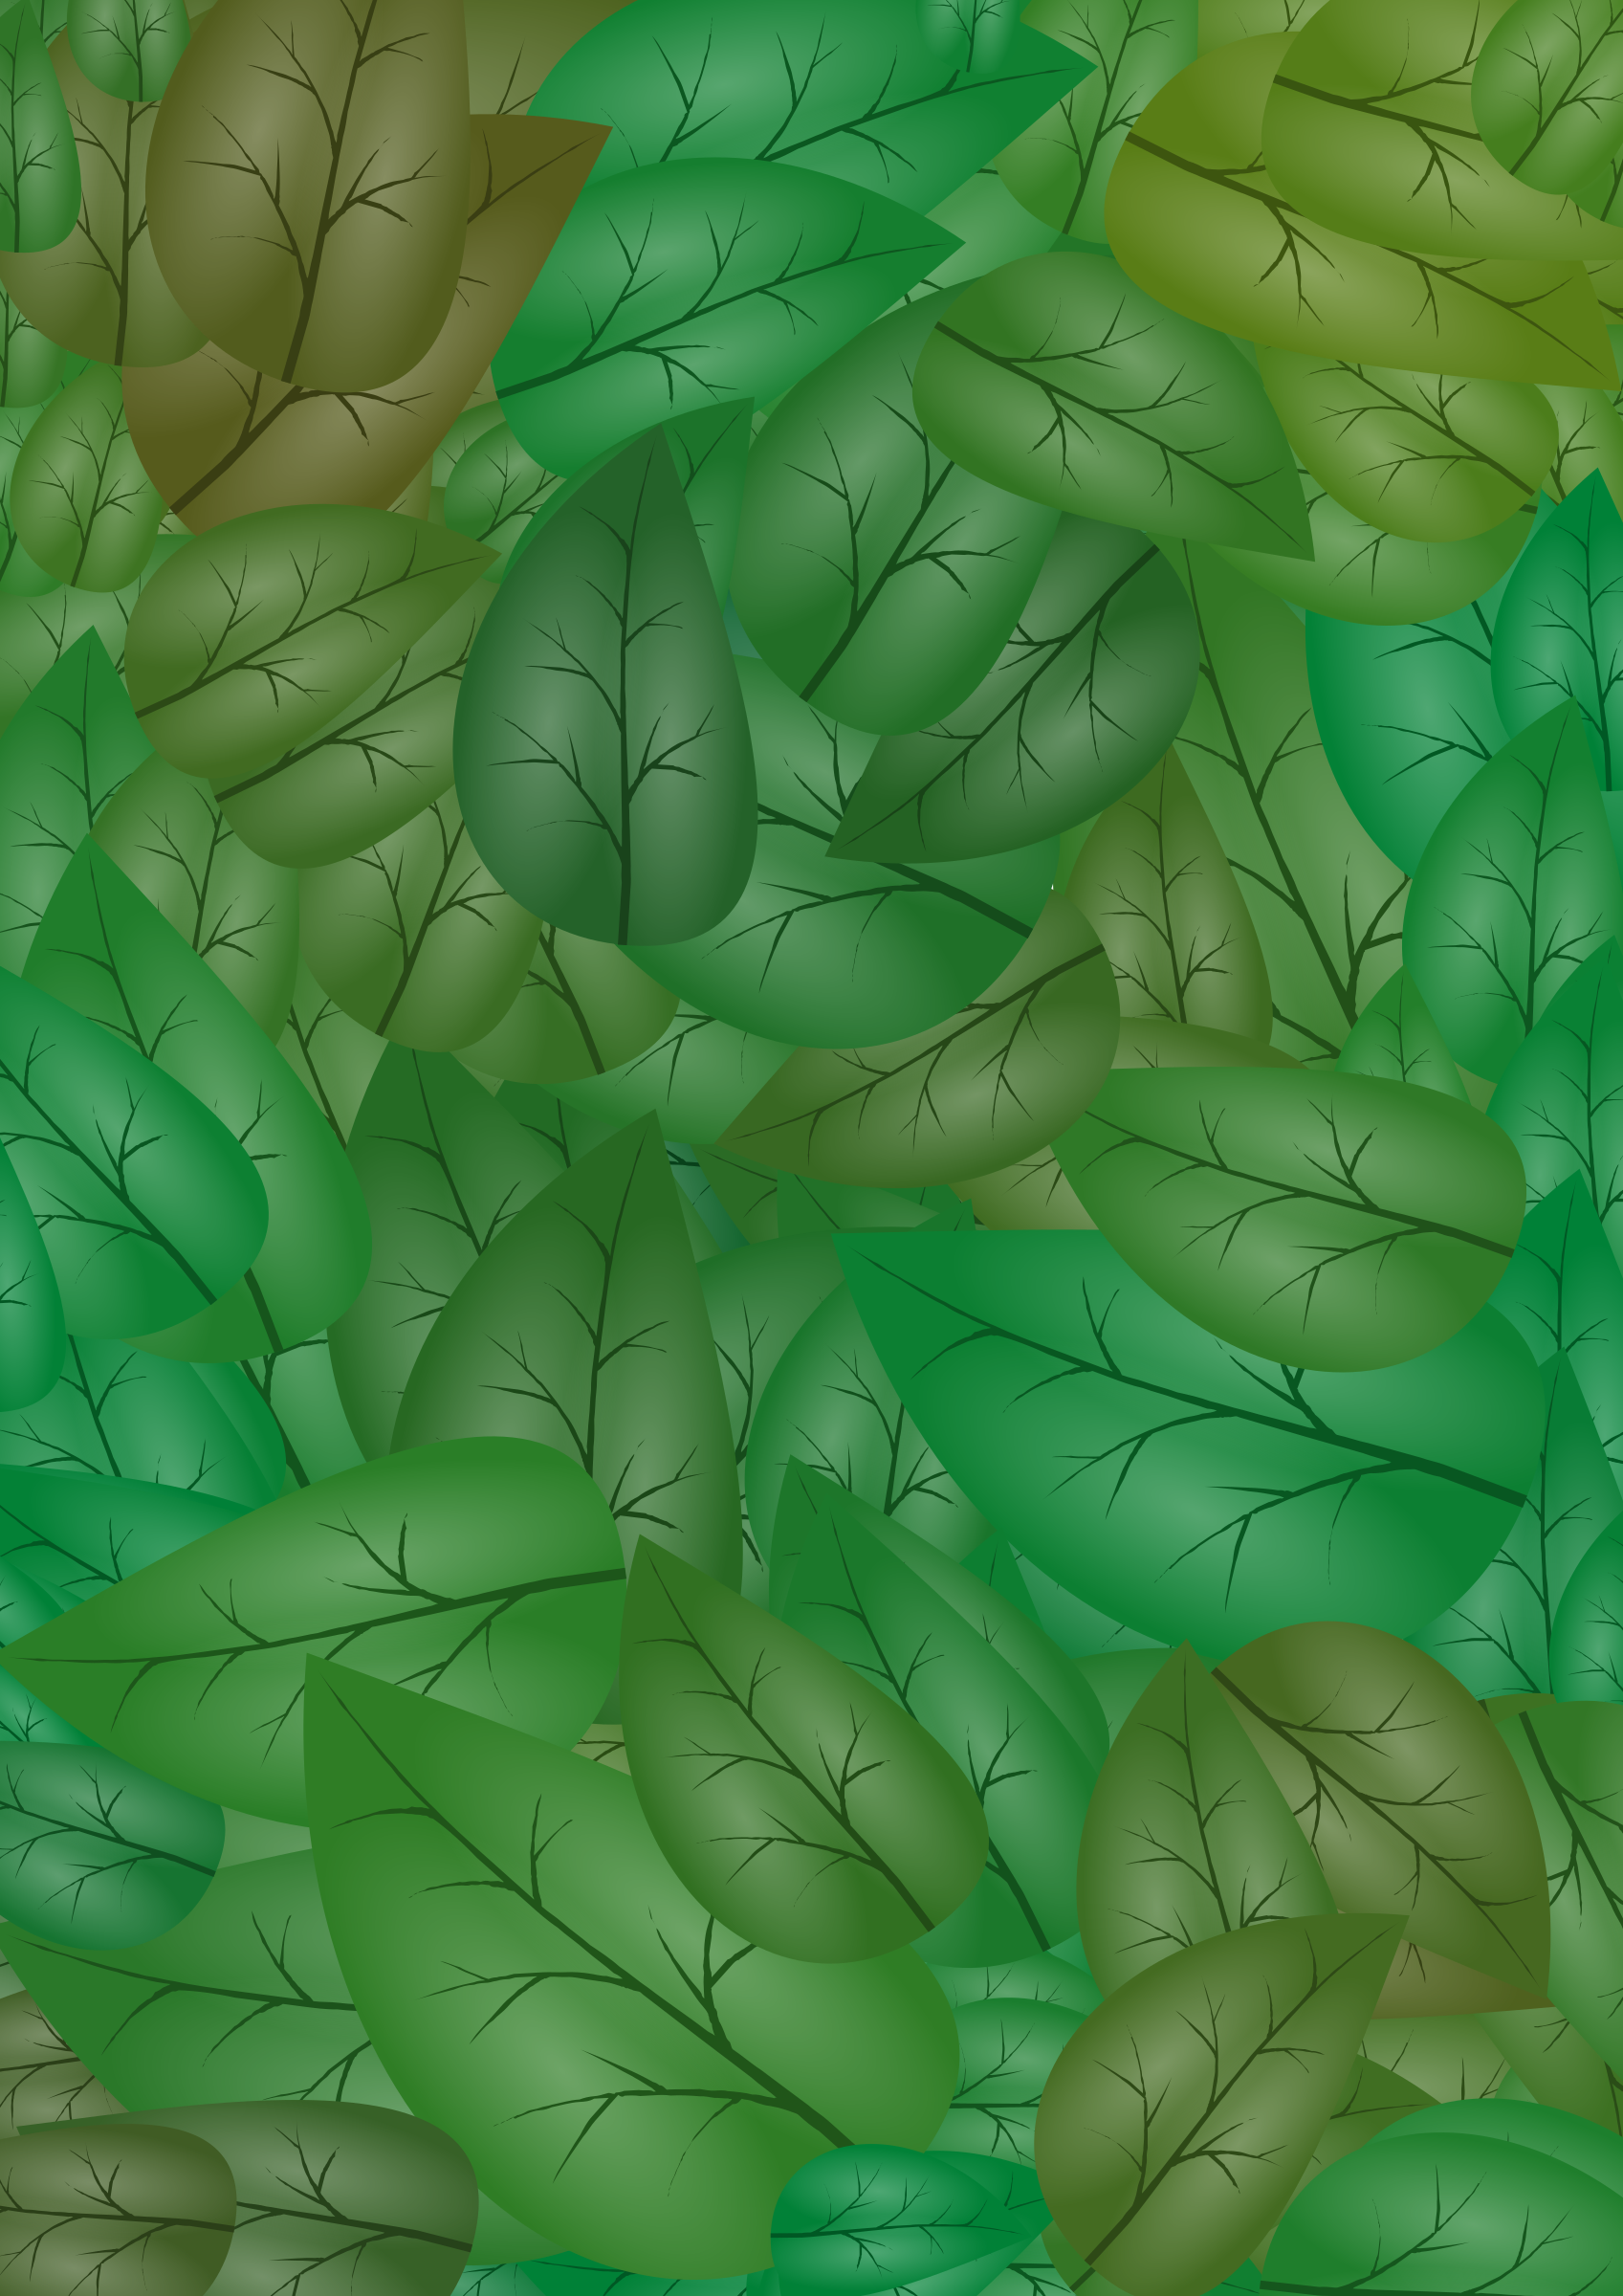 Leaves Background by gustavorezende